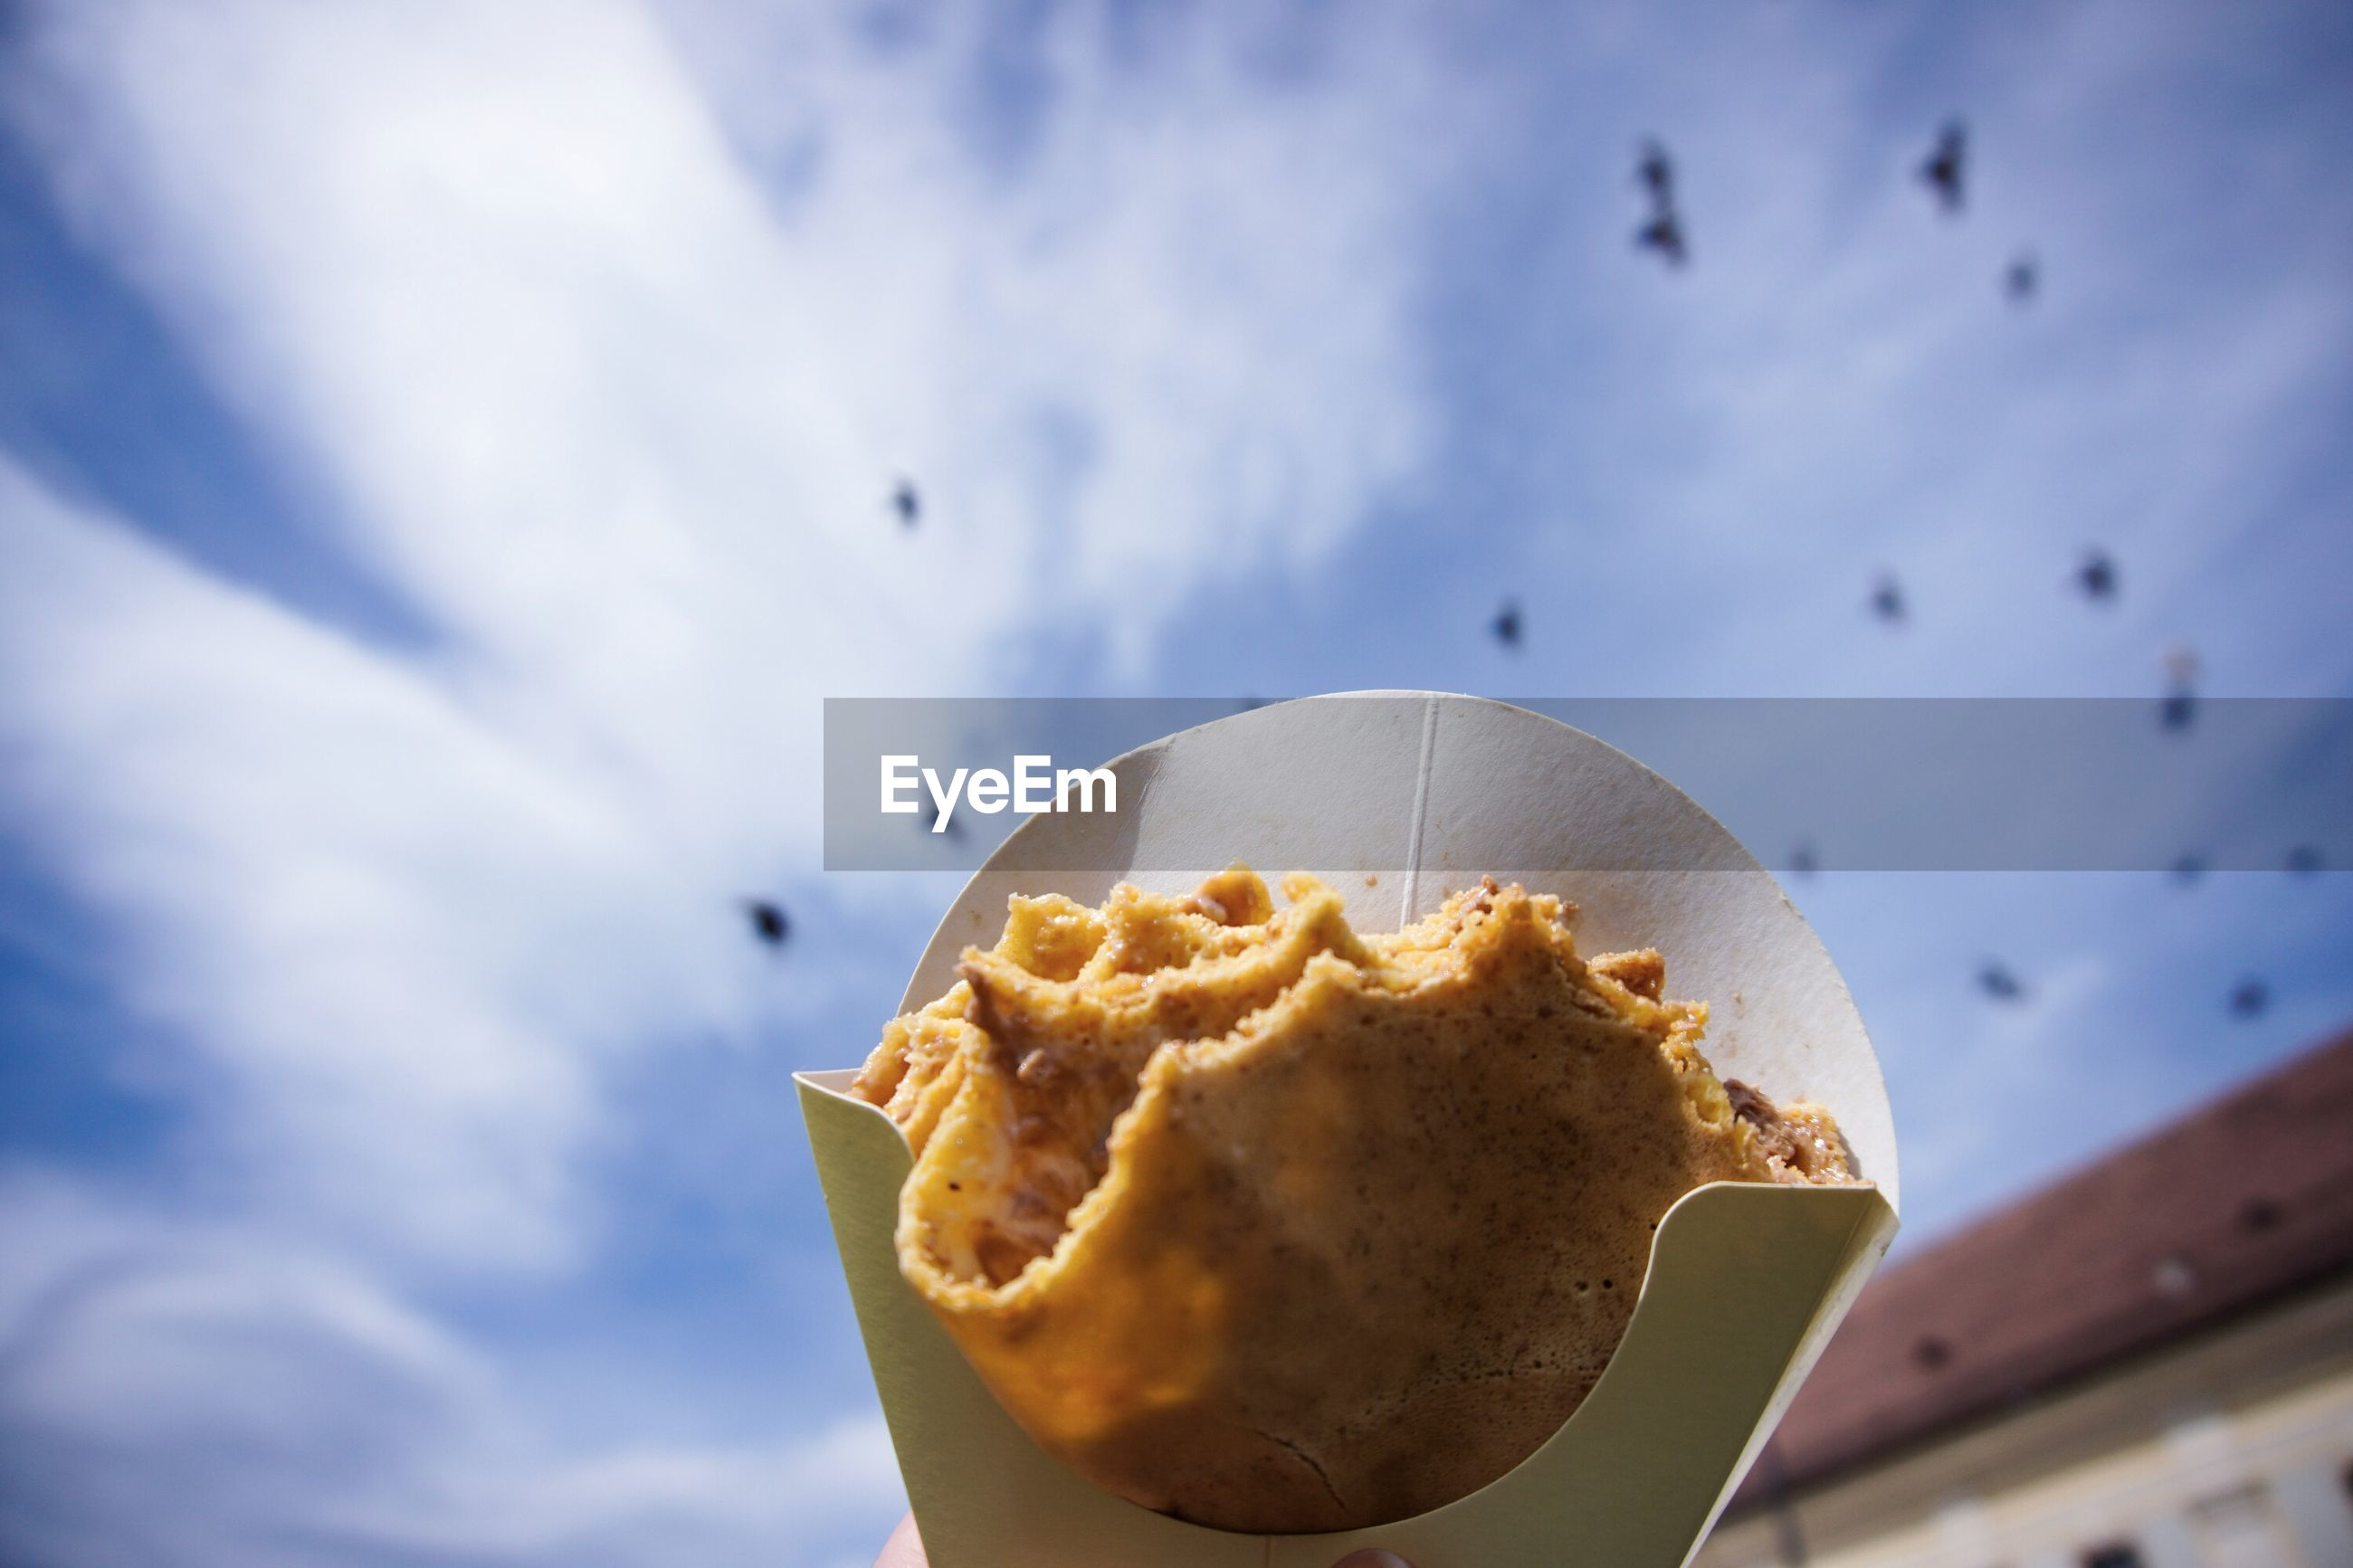 Low angle view of crepe against cloudy sky